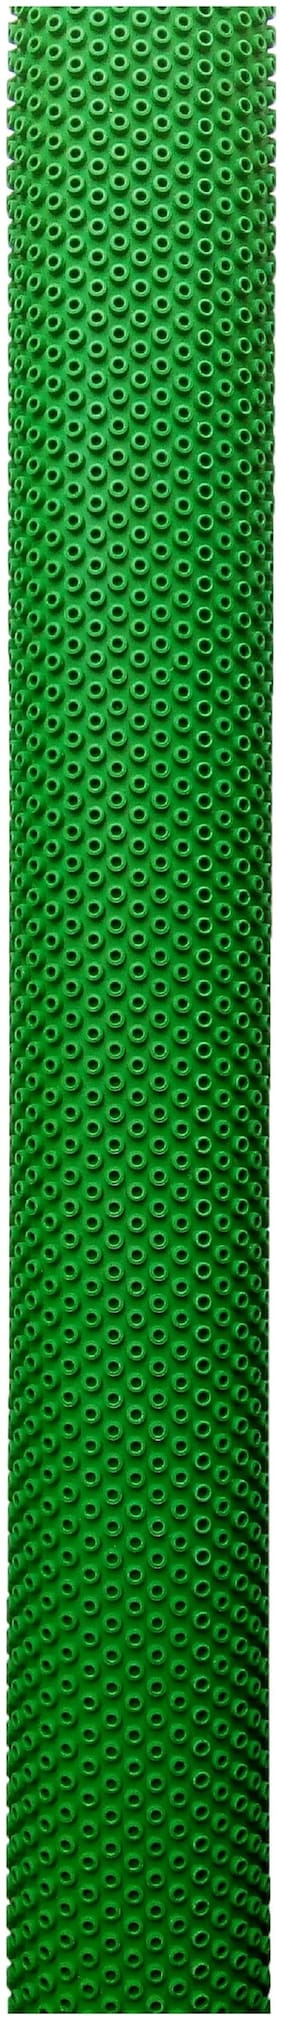 Hanushri Octopus Grip for Cricket Bat (Green;Pack of 1)